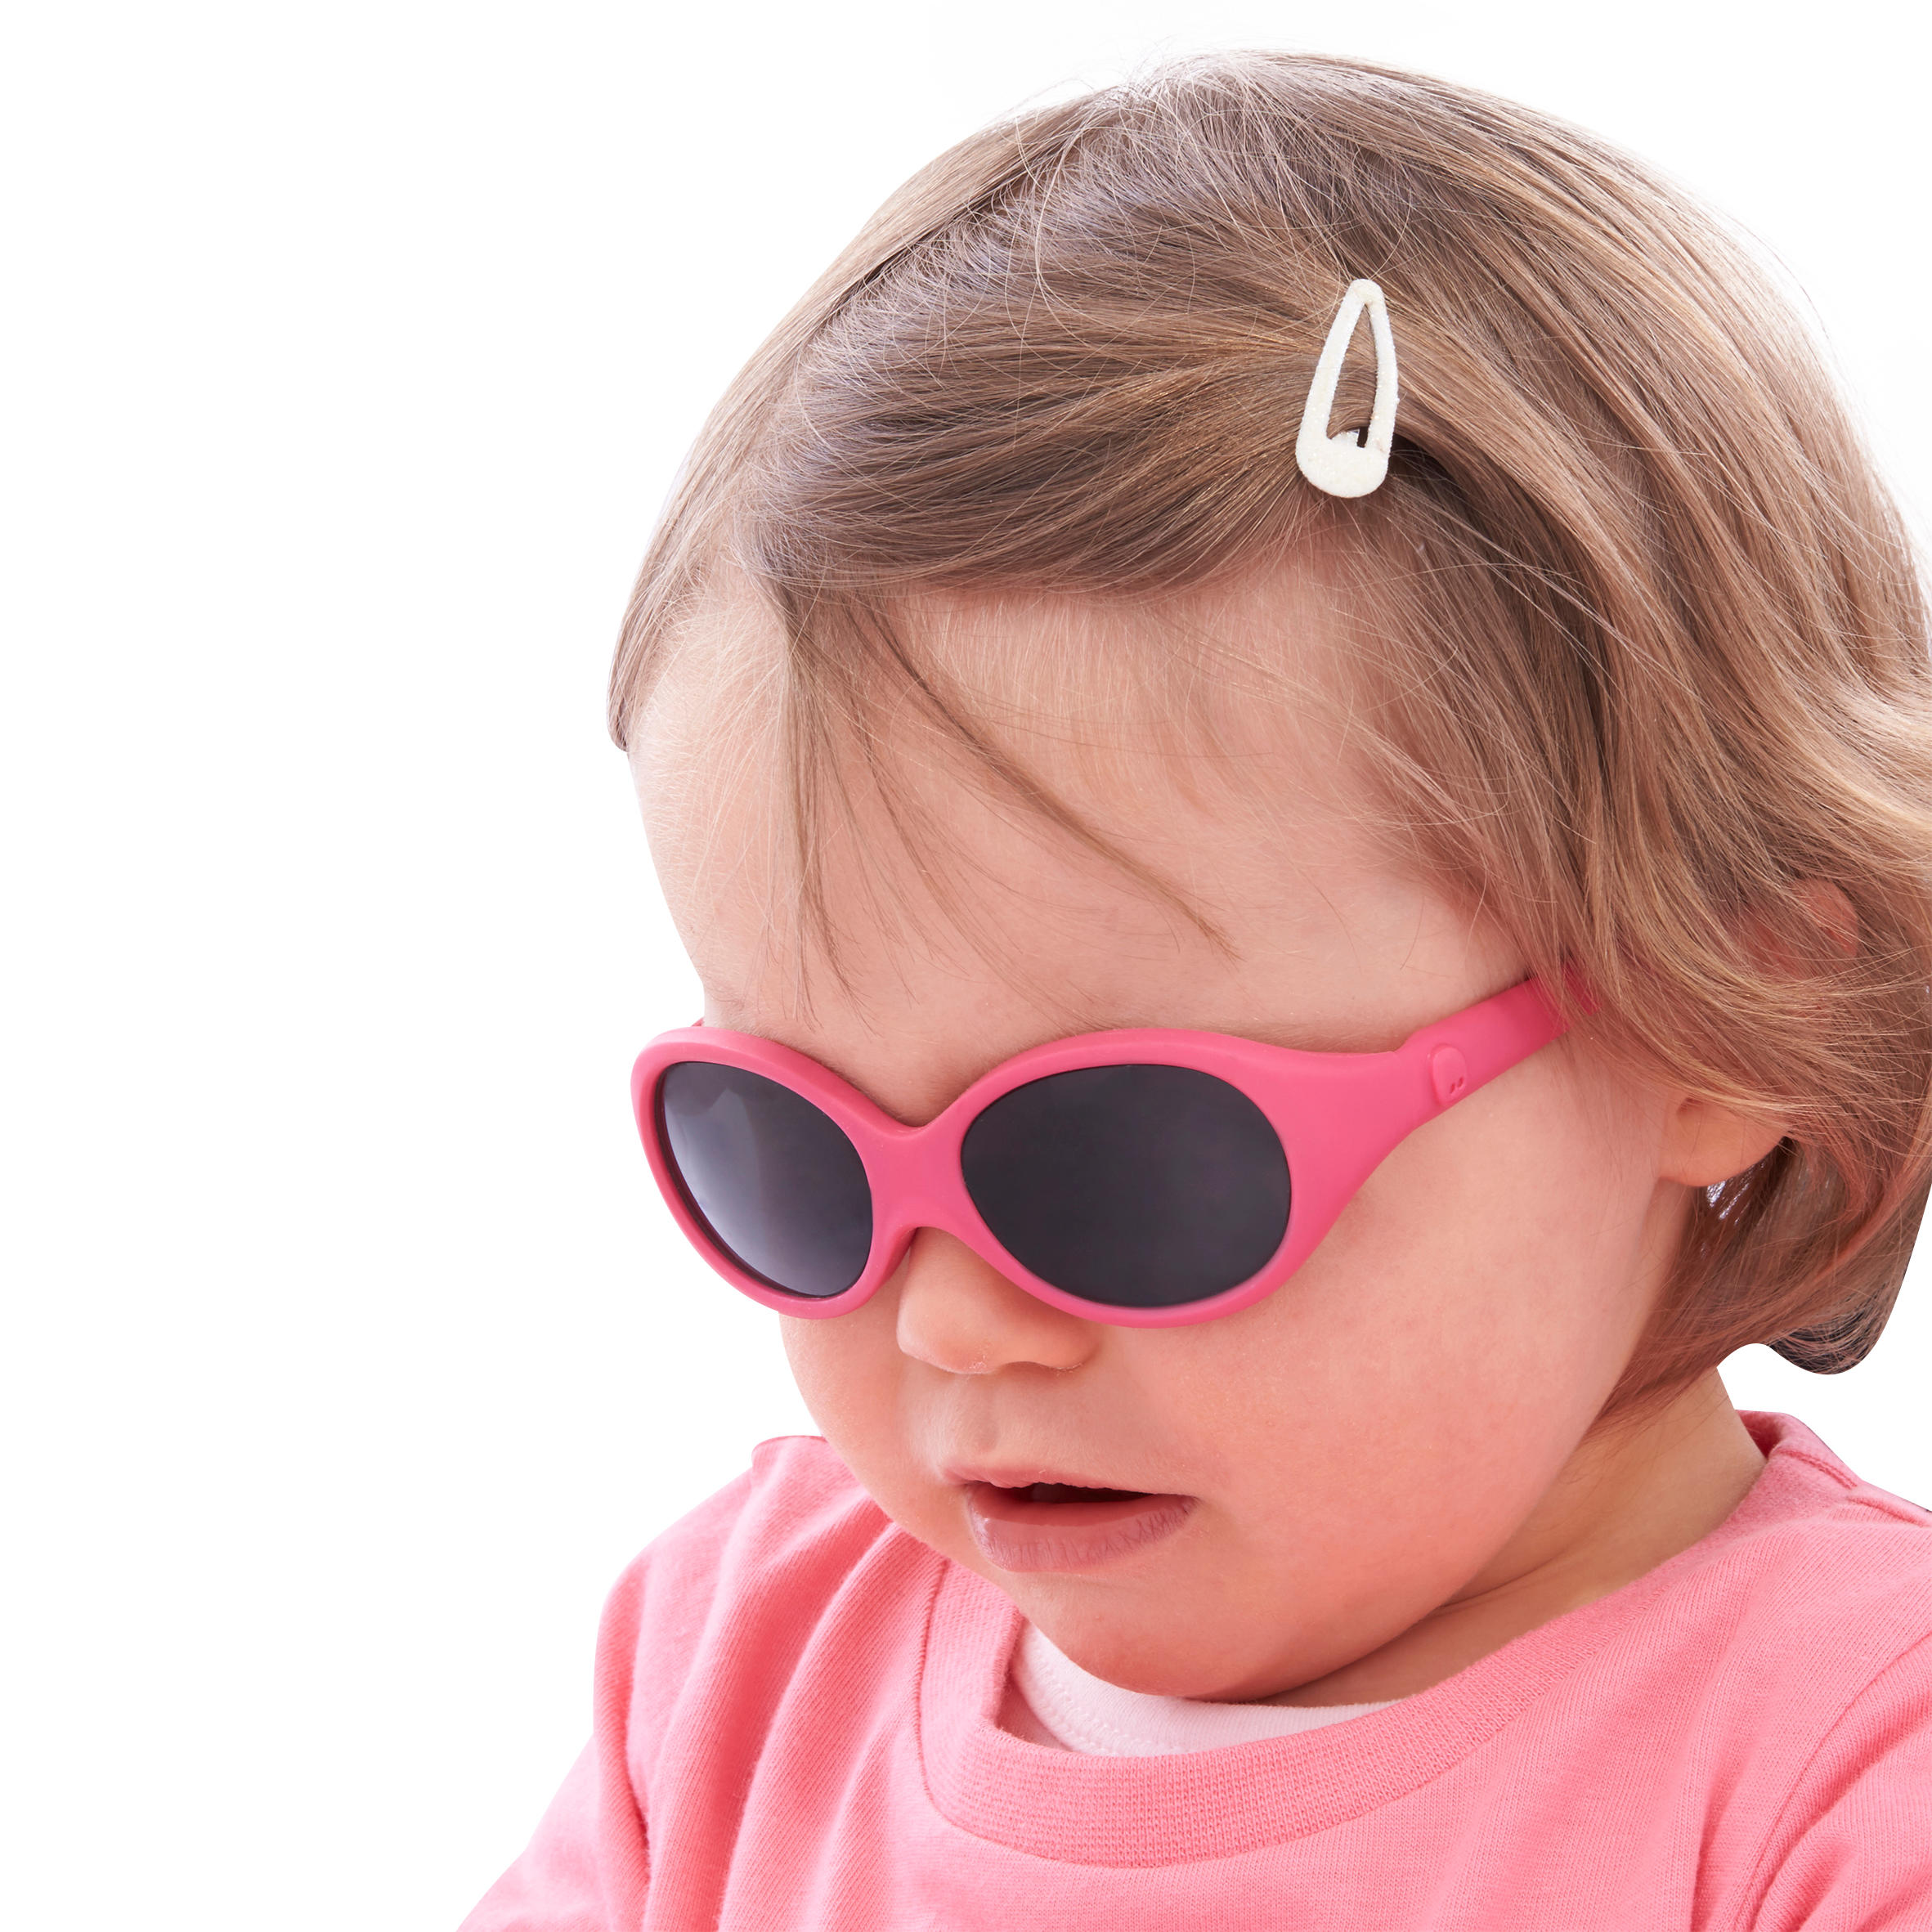 Baby Hiking Age 6-24 Months Category 4 Sunglasses MH B 500 - Pink